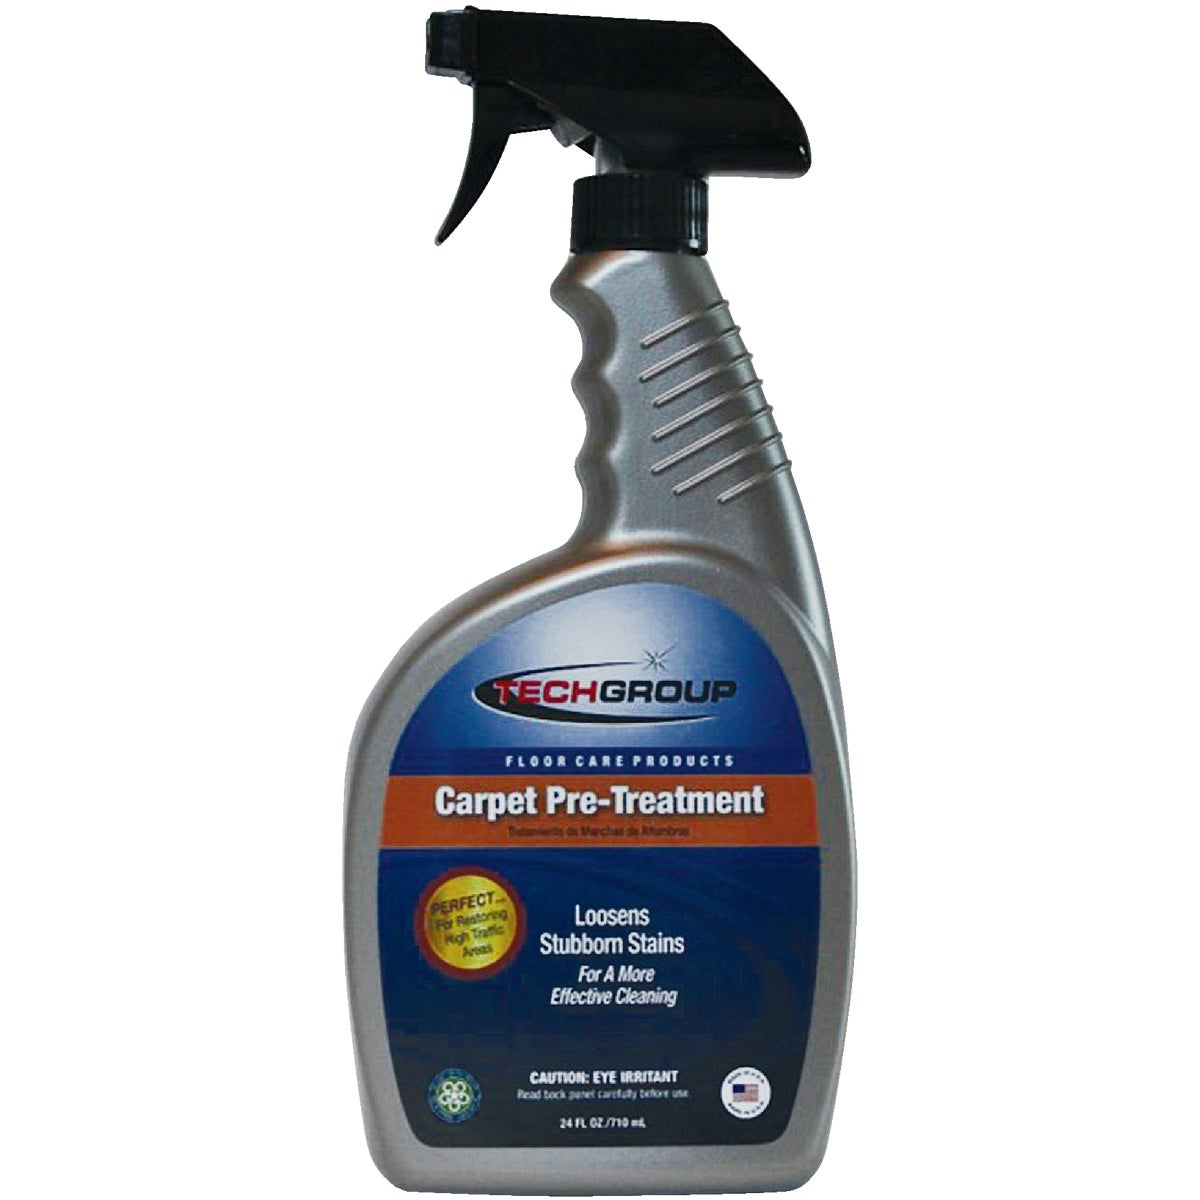 24OZ CARPET PRETREATMENT - 5444 by Cul Mac Ind